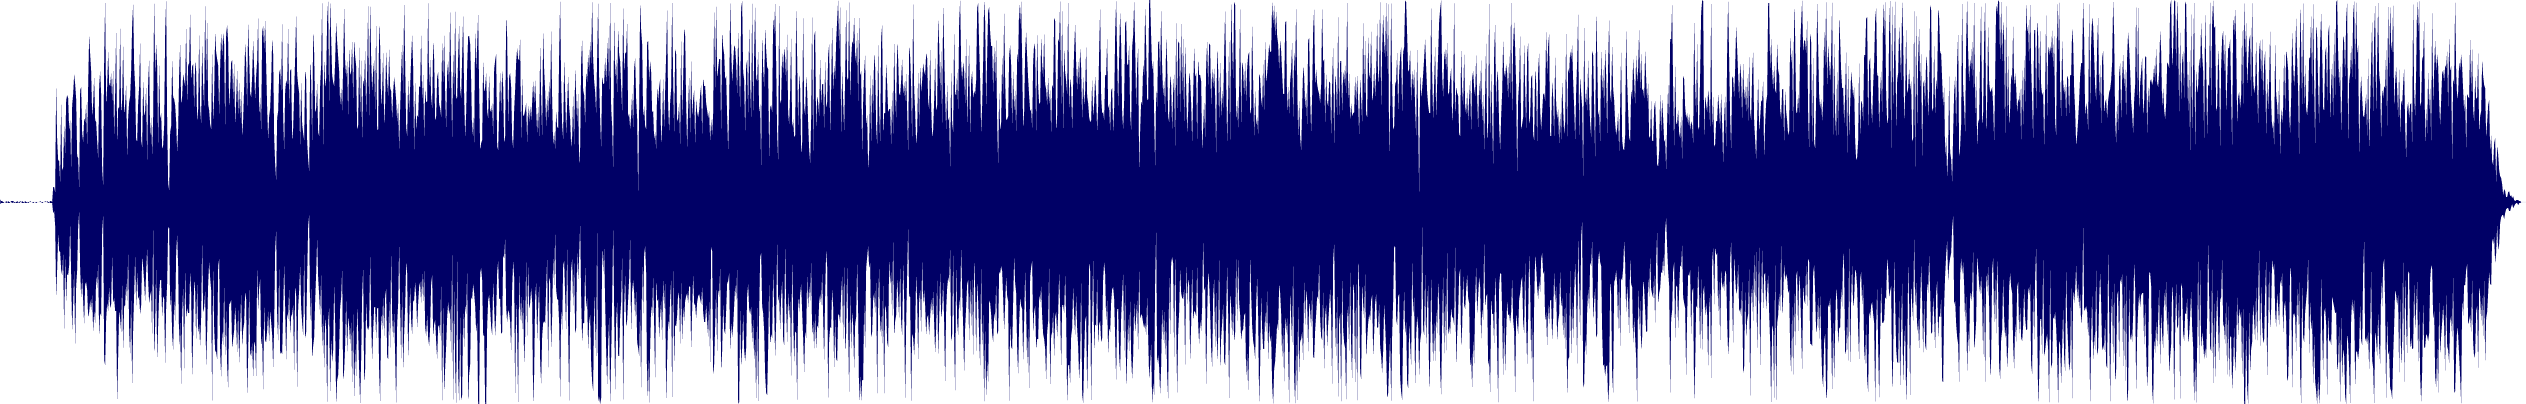 waveform of track #112413